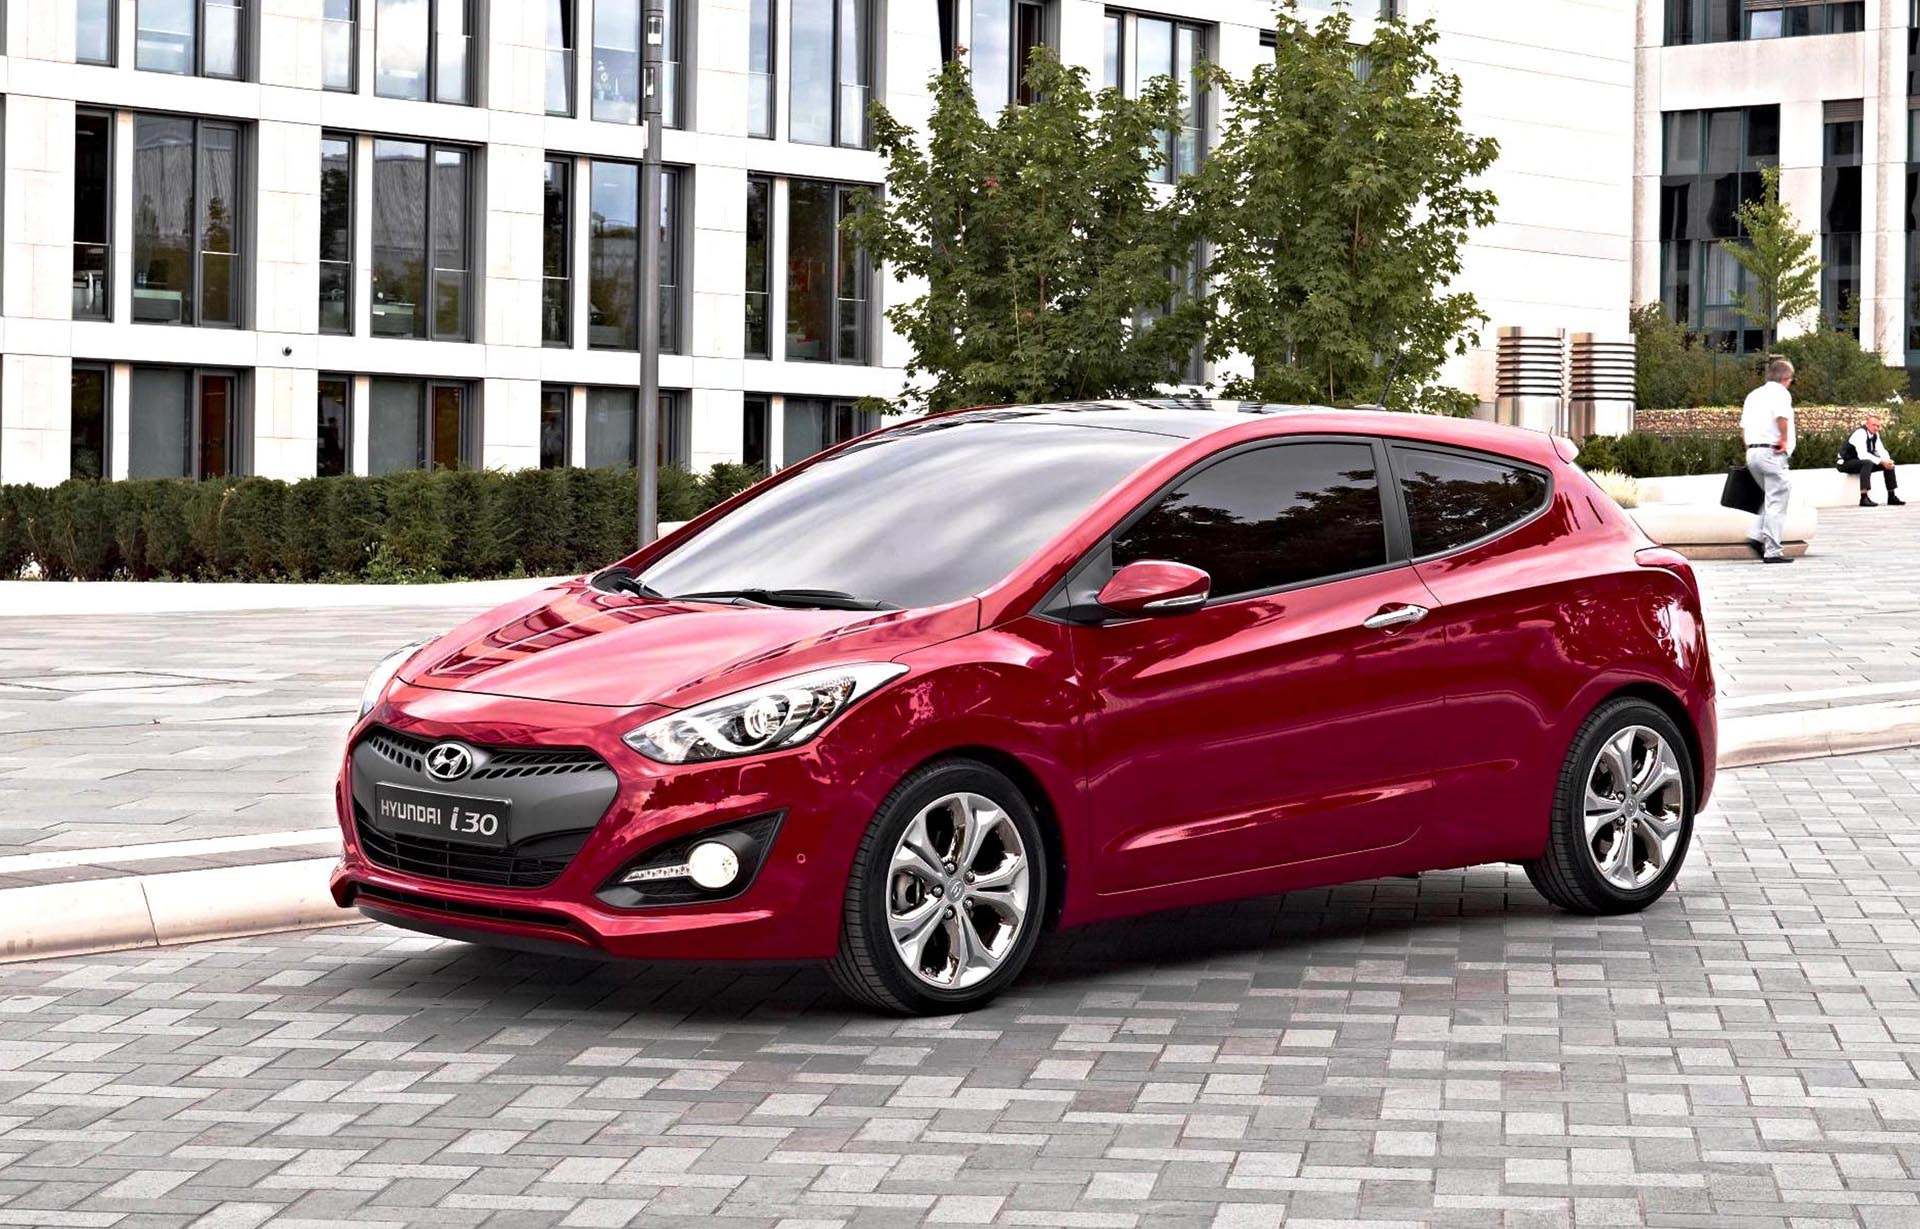 2013 Hyundai I30 News And Information Conceptcarz Com